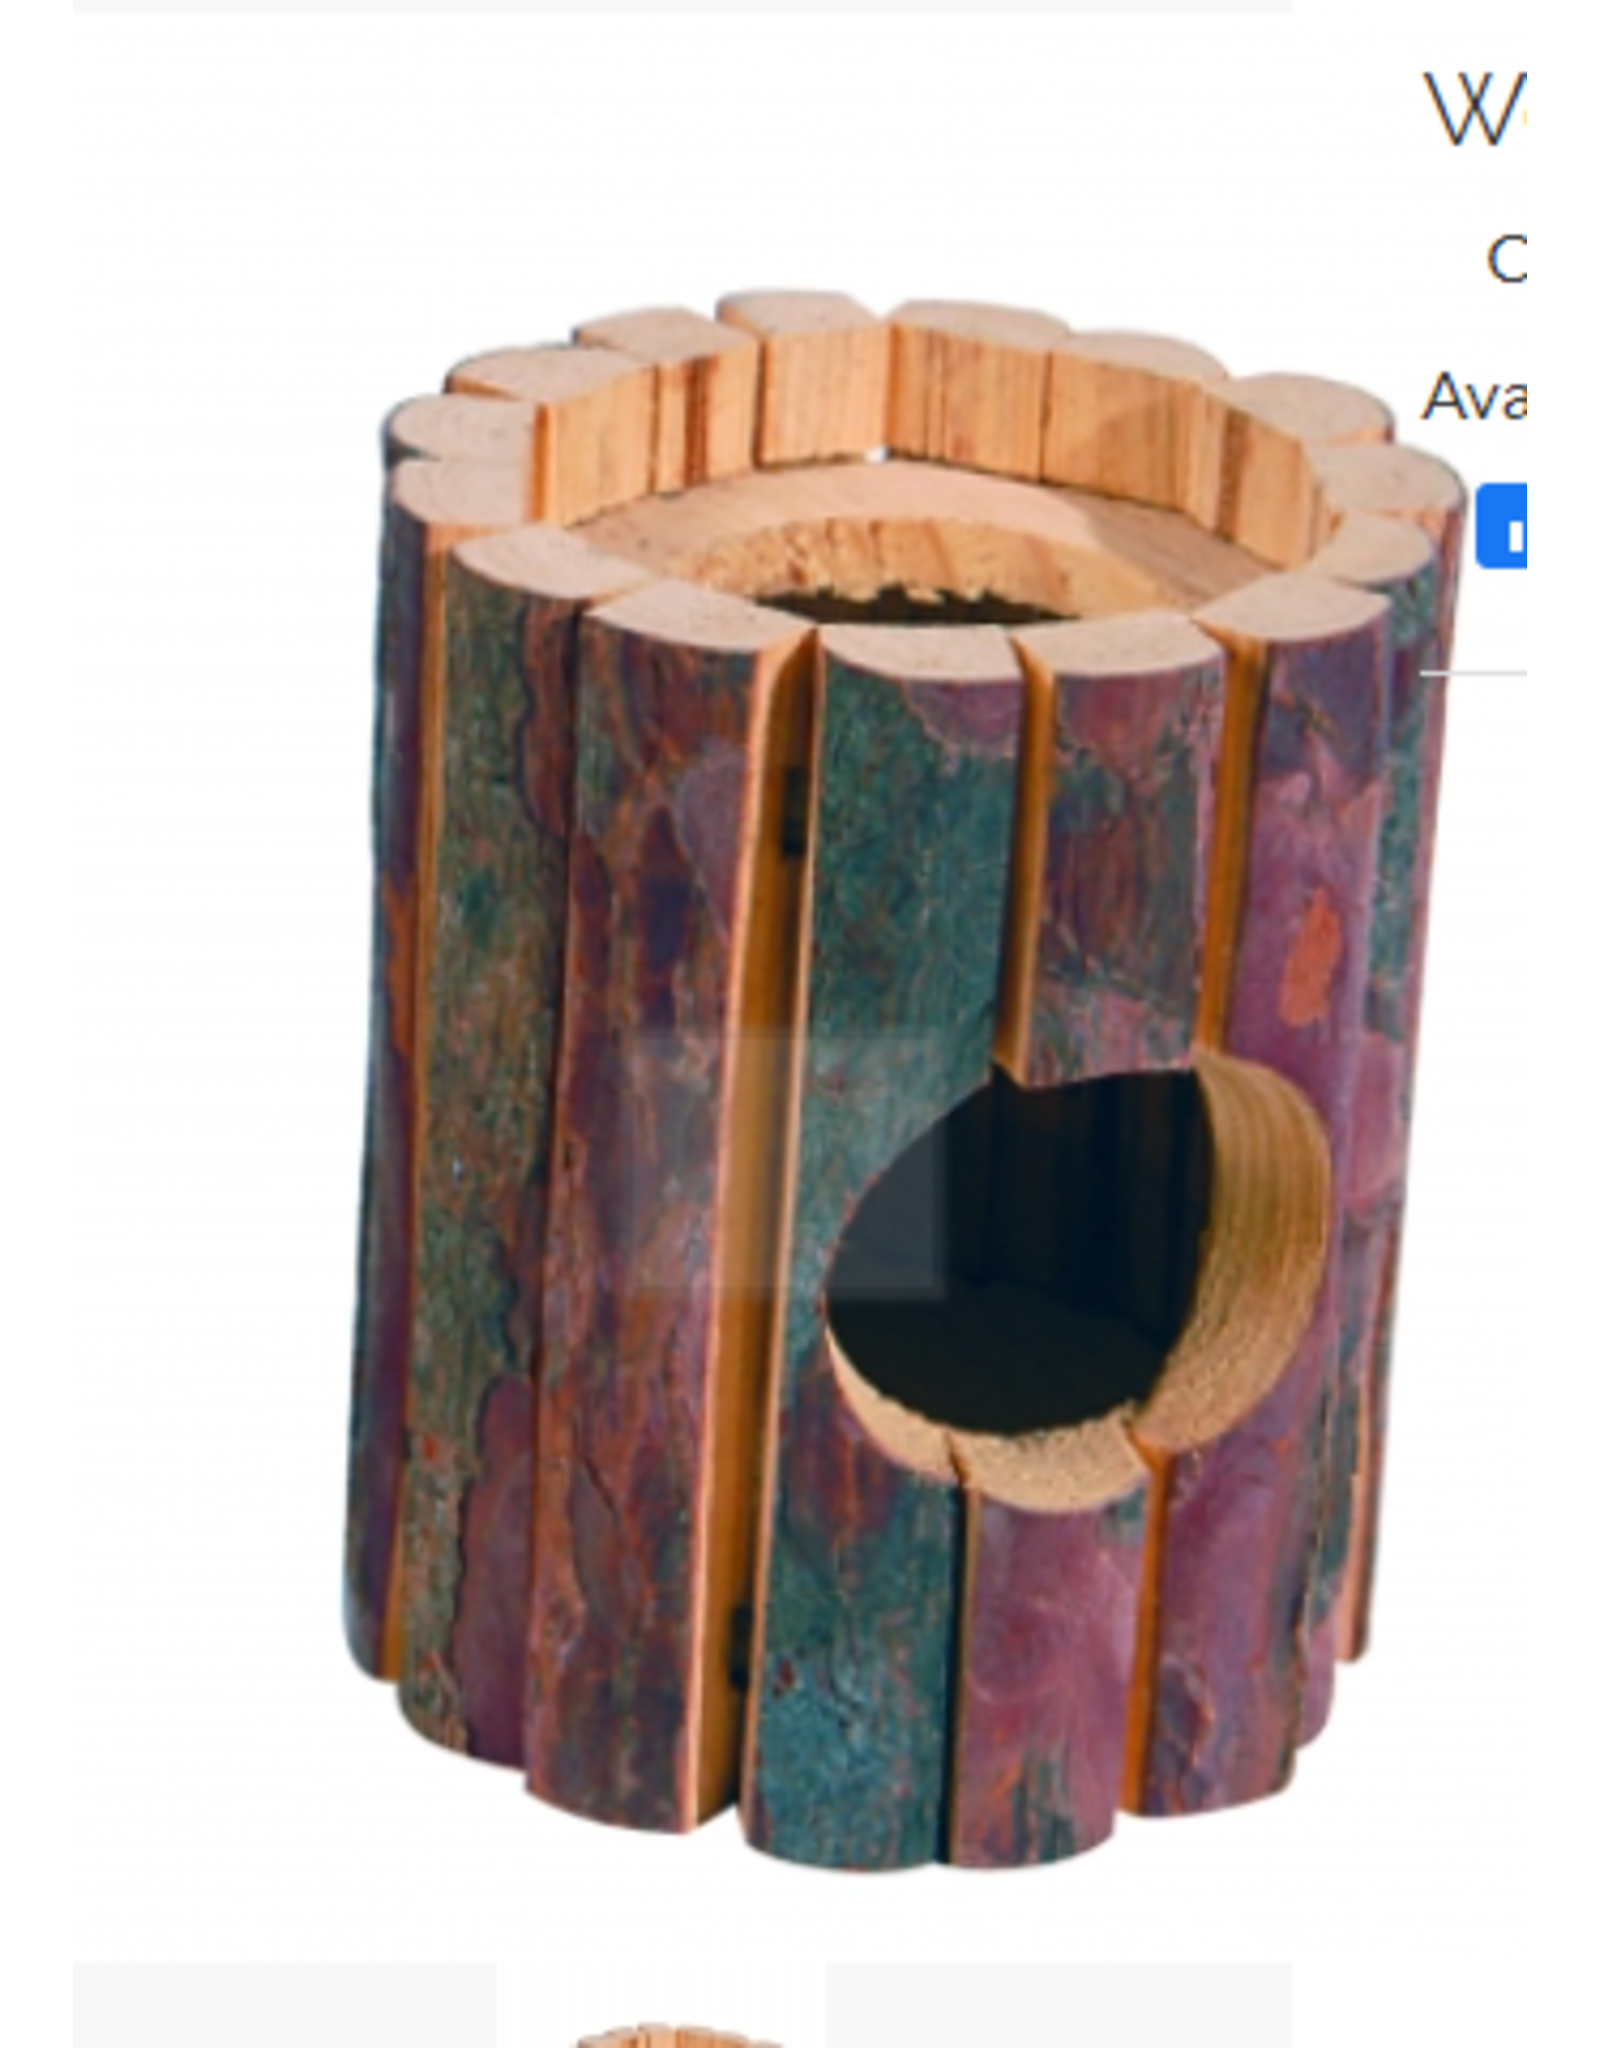 Sky Pet Products Wooden Turret Hideout Large